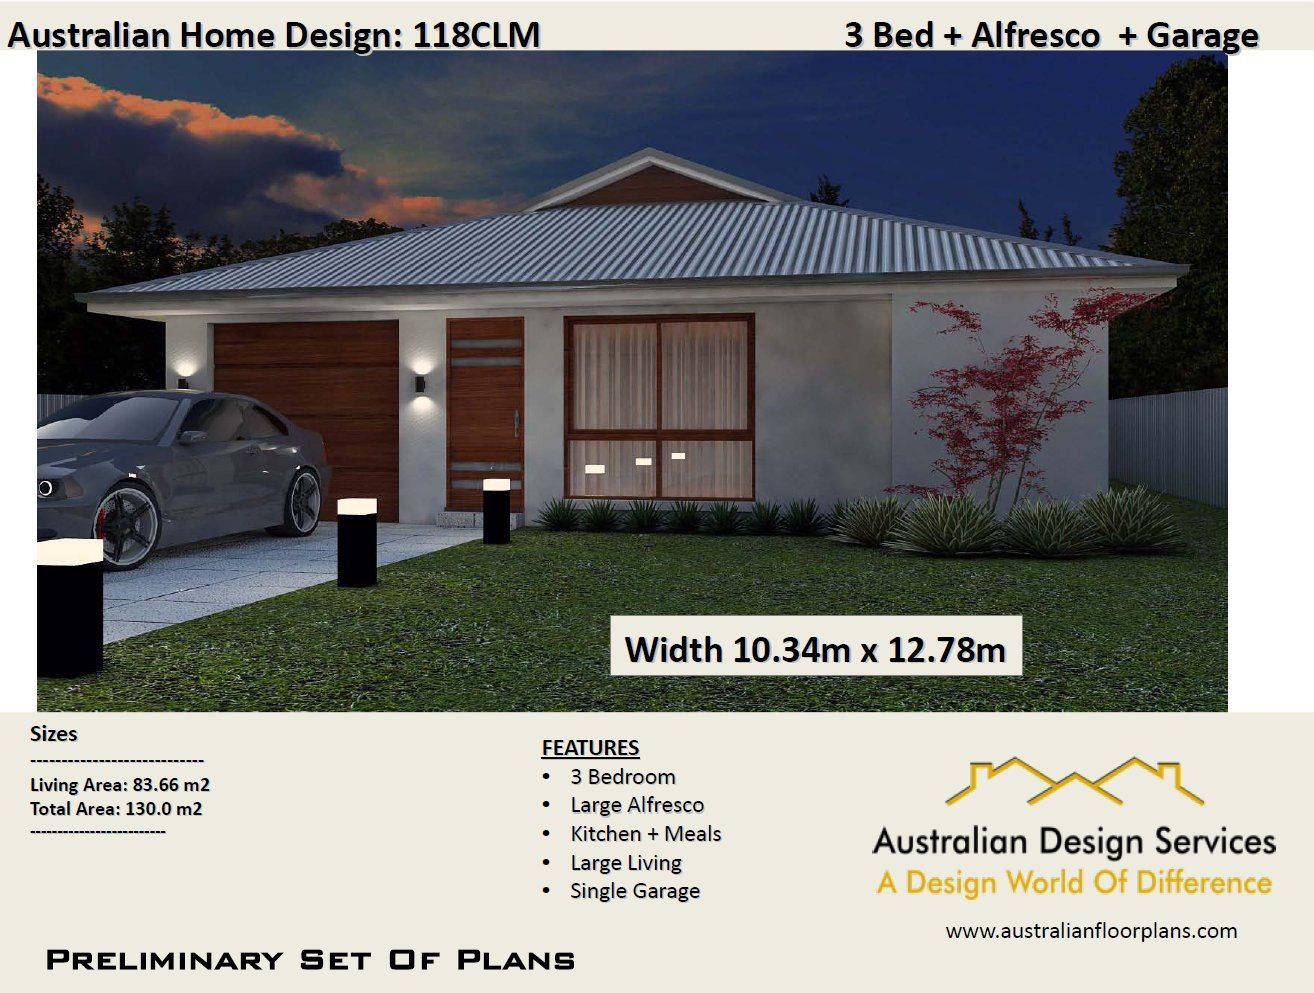 Modern house plans 130m2 3 bedroom garage 3 bed room house plans home plans for sale 3 bedroom design a home by australianhouseplans on etsy